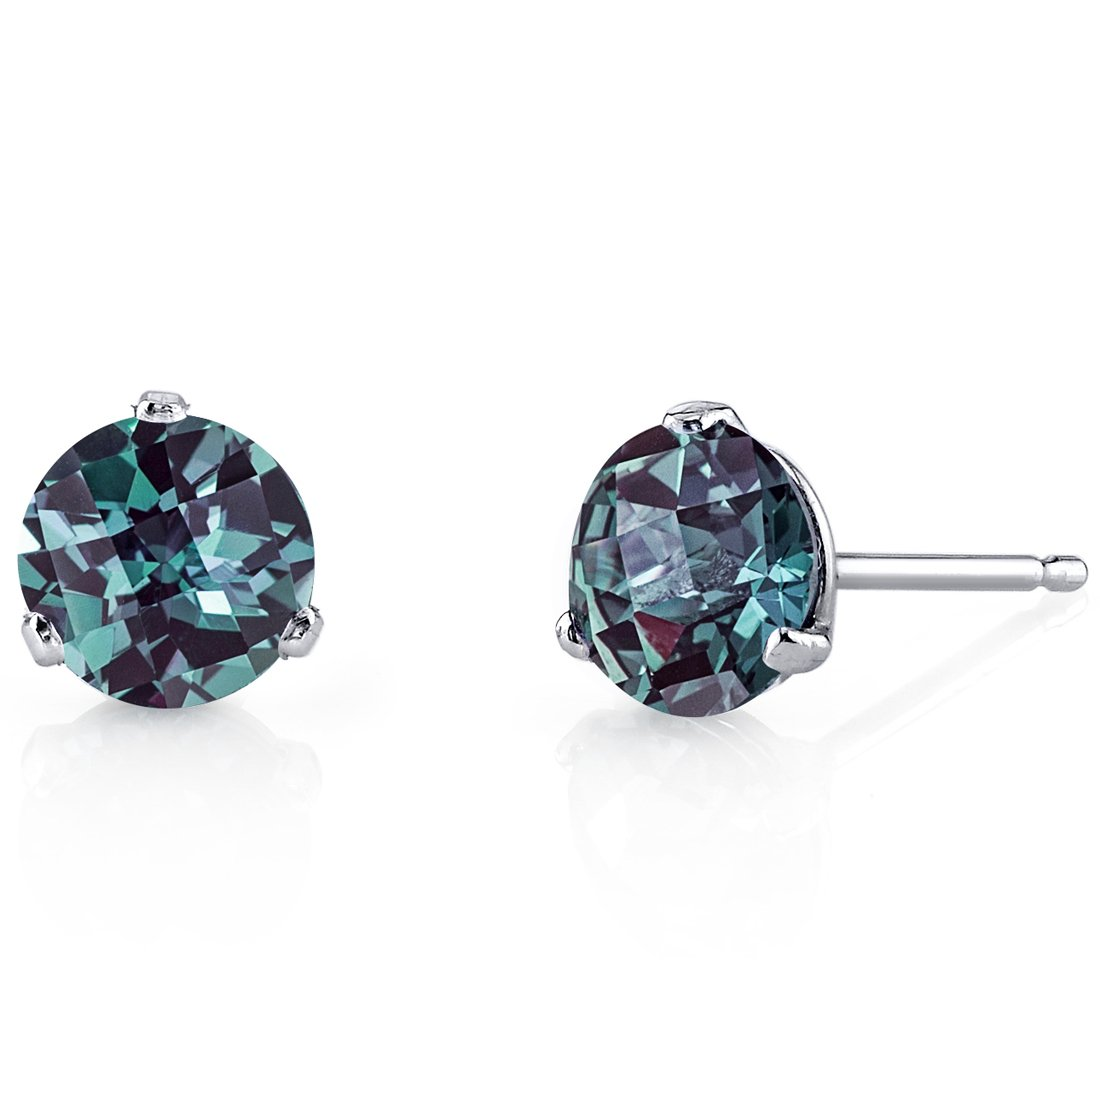 14 Kt White Gold Martini Style Round Cut 2.00 Carats Created Alexandrite Stud Earrings by Peora